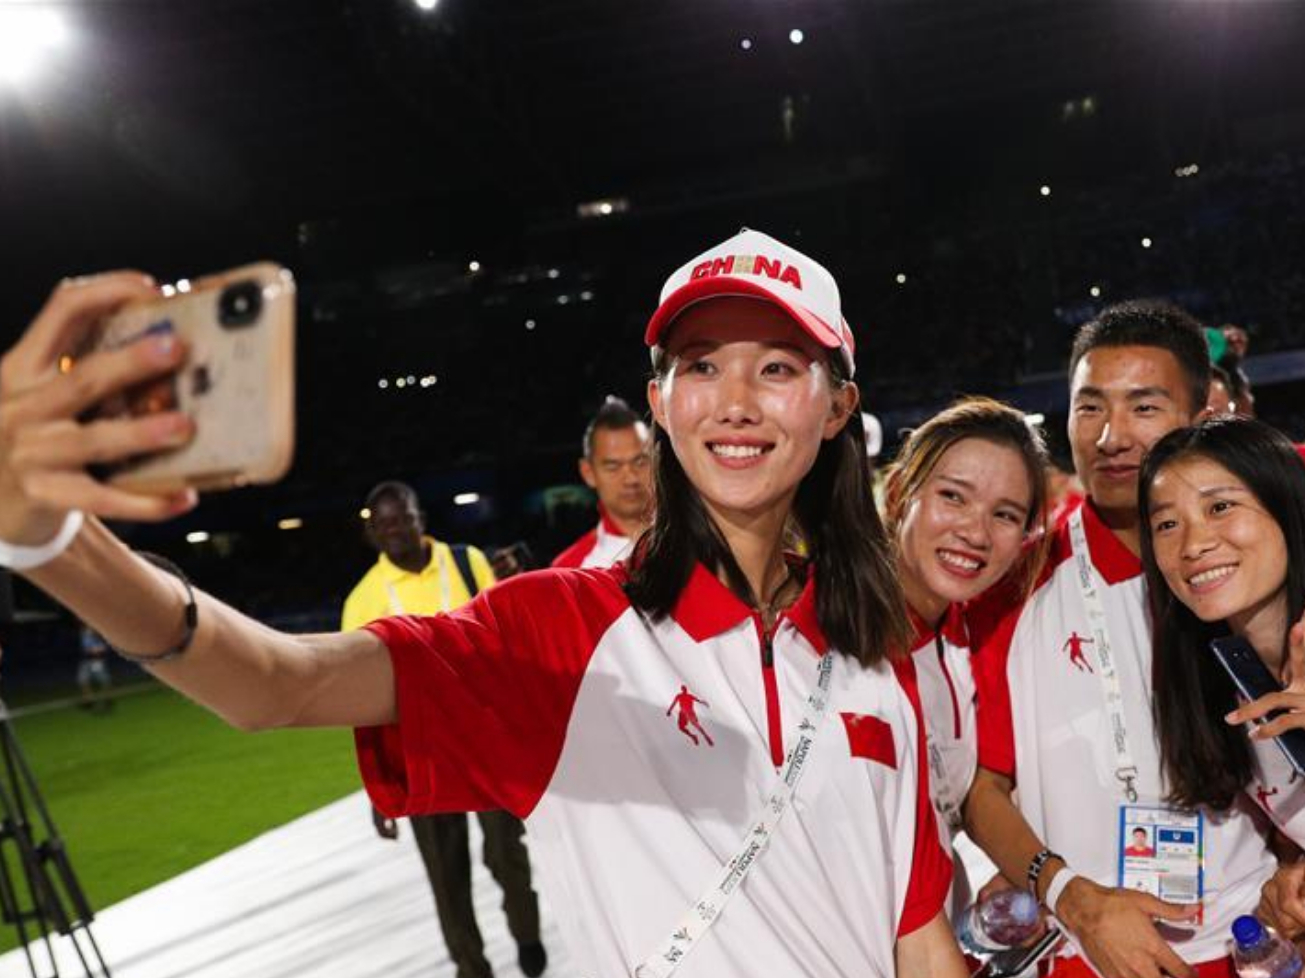 30th summer Universiade closes in Naples, Italy